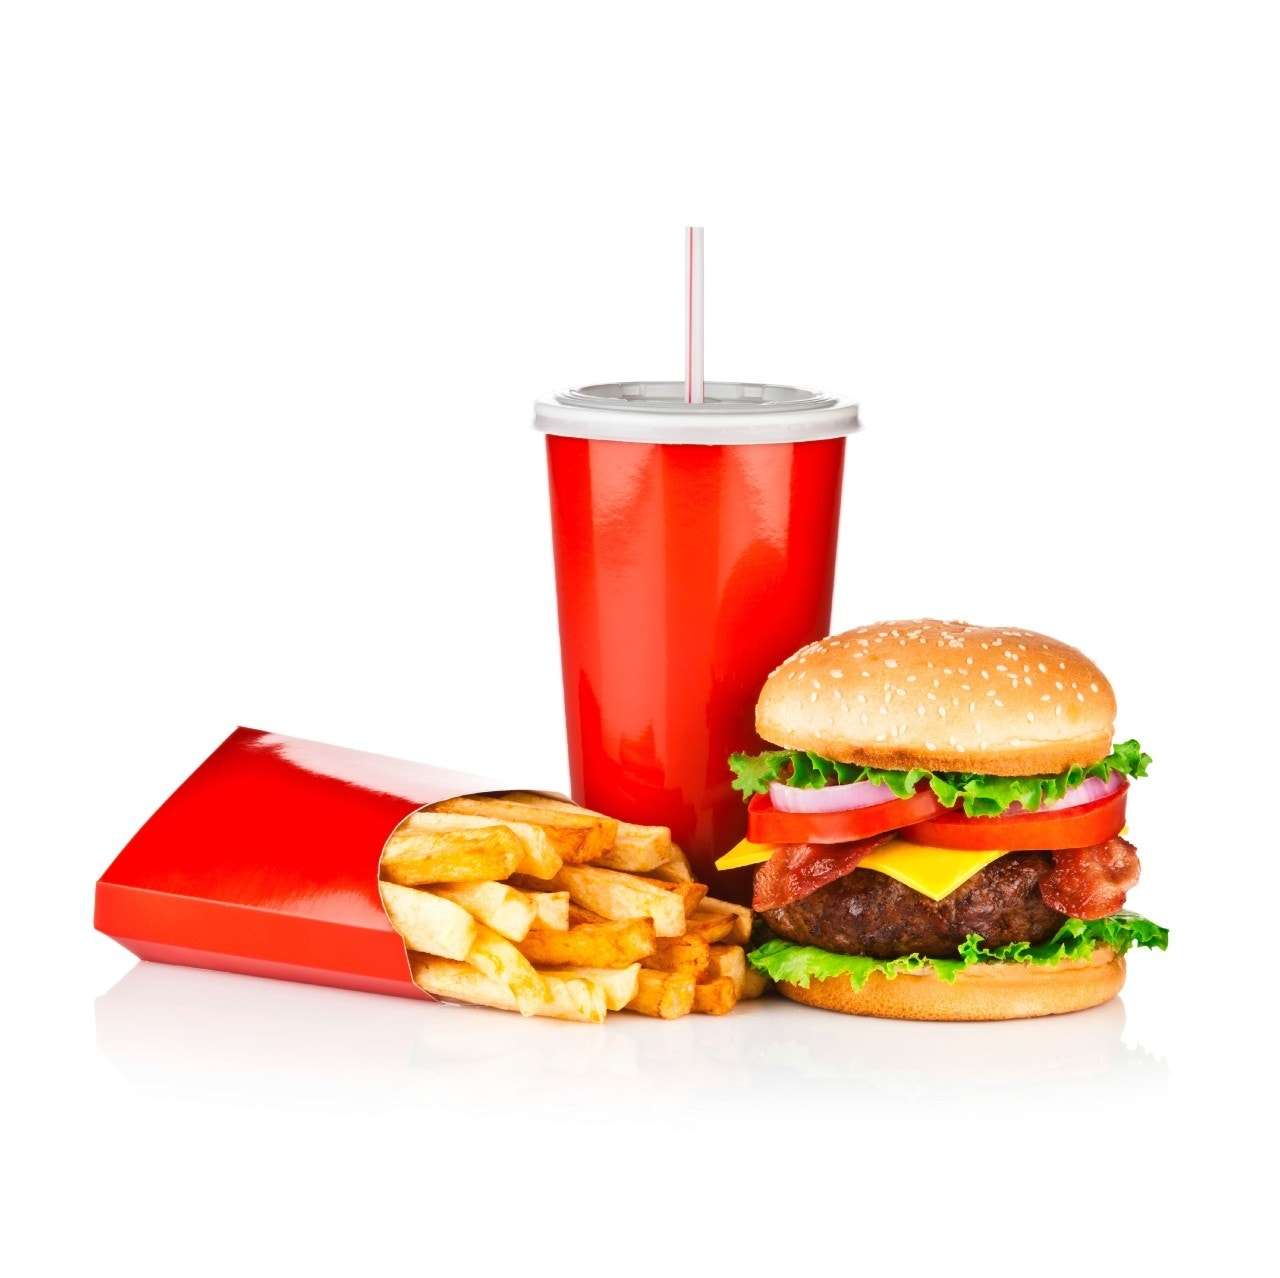 Food: Fast Food Choices Influence Kids' Soda And Calorie